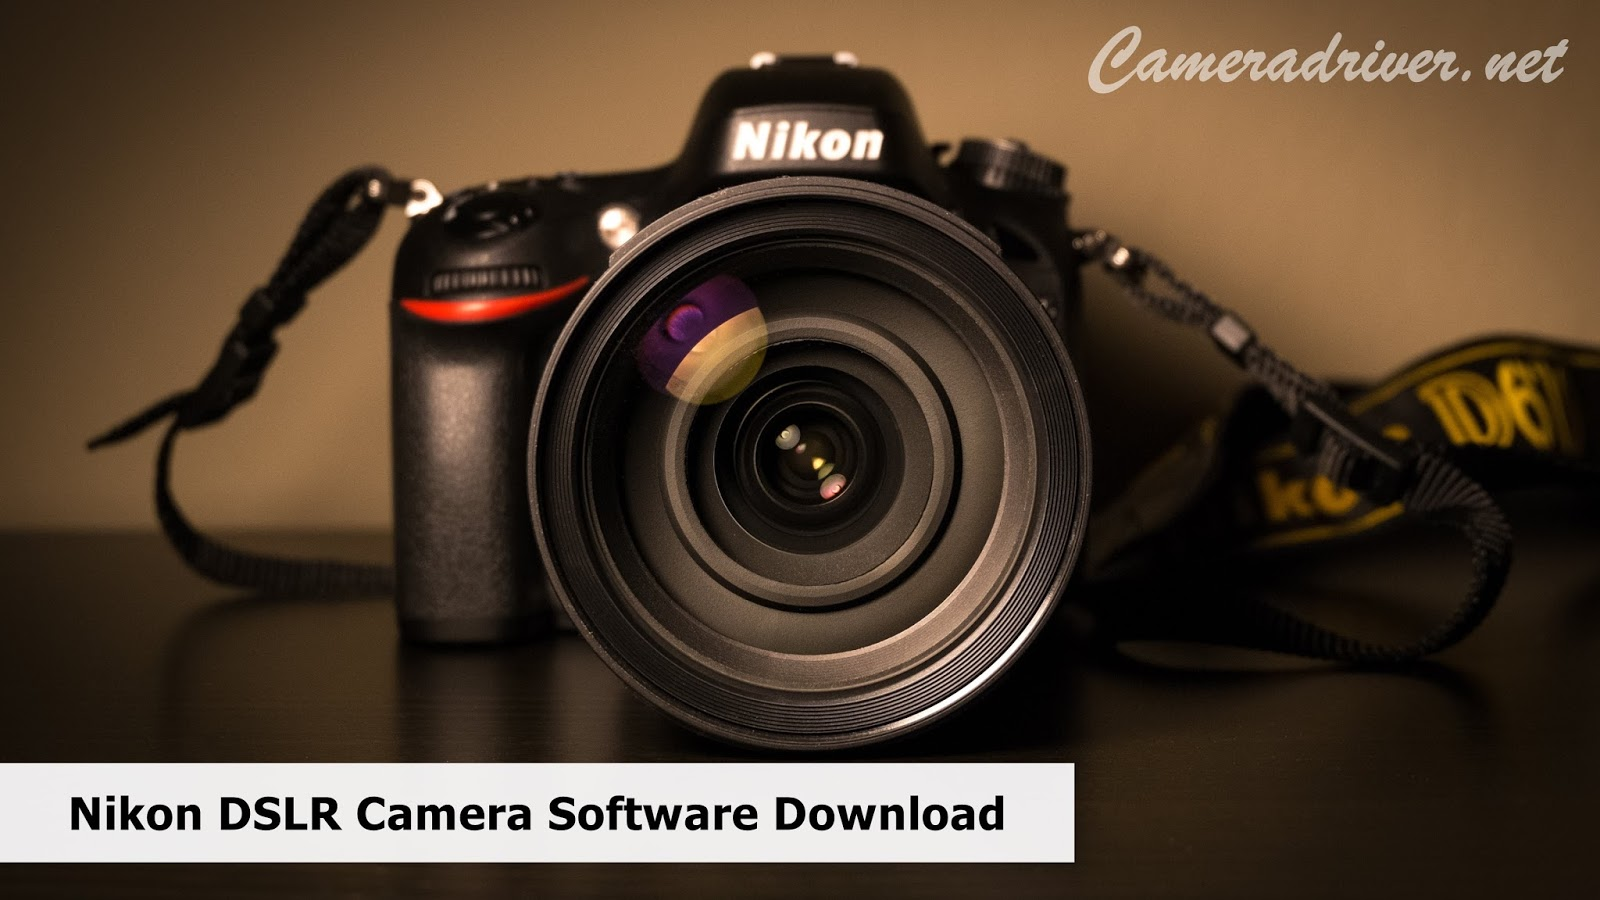 Nikon DSLR Camera Firmware and Software Download